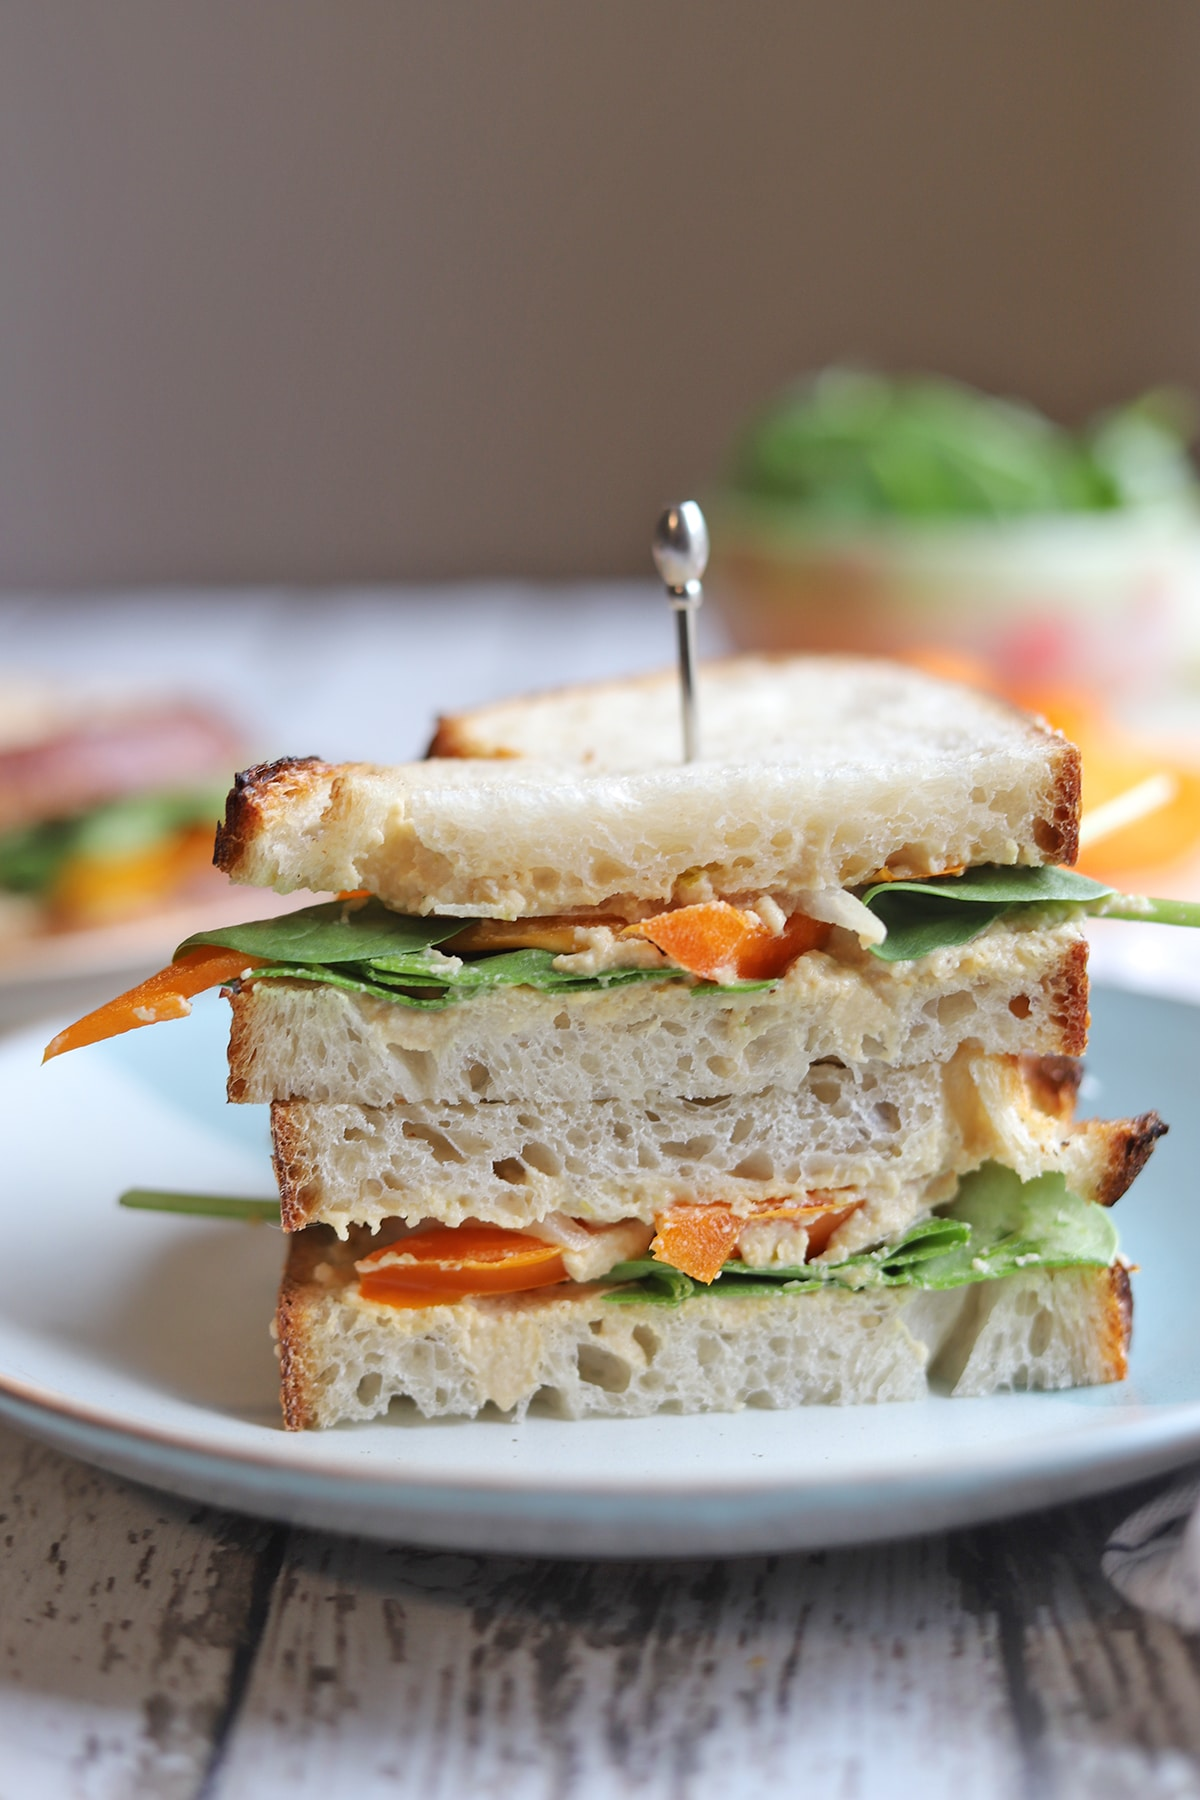 Vegetable sandwich on plate with pick.